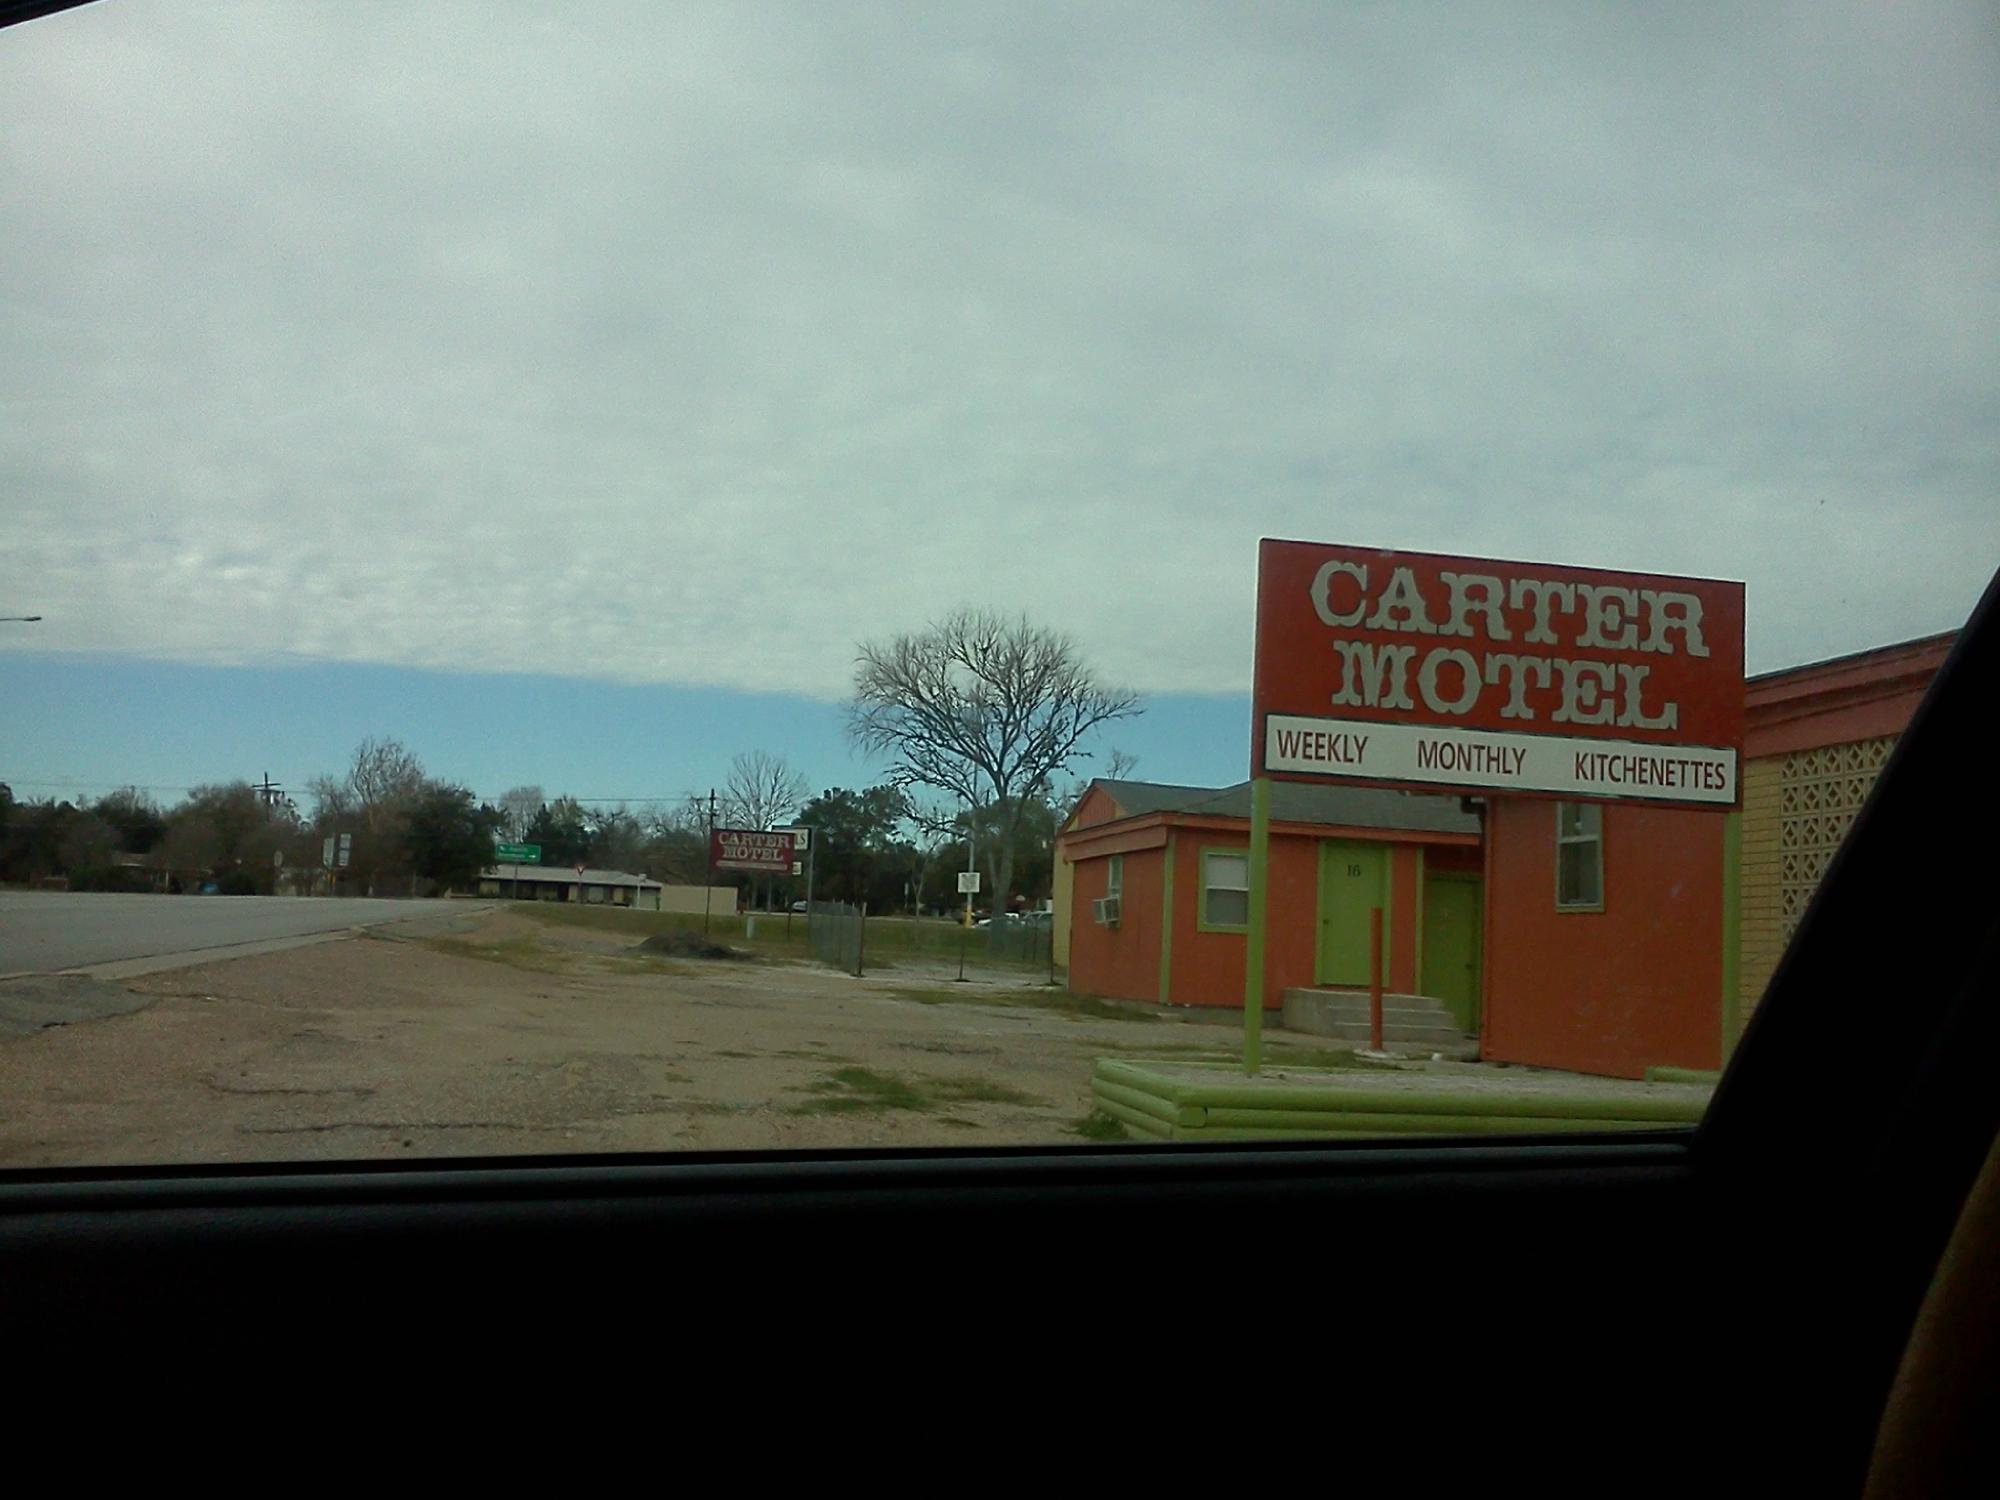 La Grange (TX) United States  City pictures : Carter Motel La Grange, Texas BEST Motel Reviews TripAdvisor